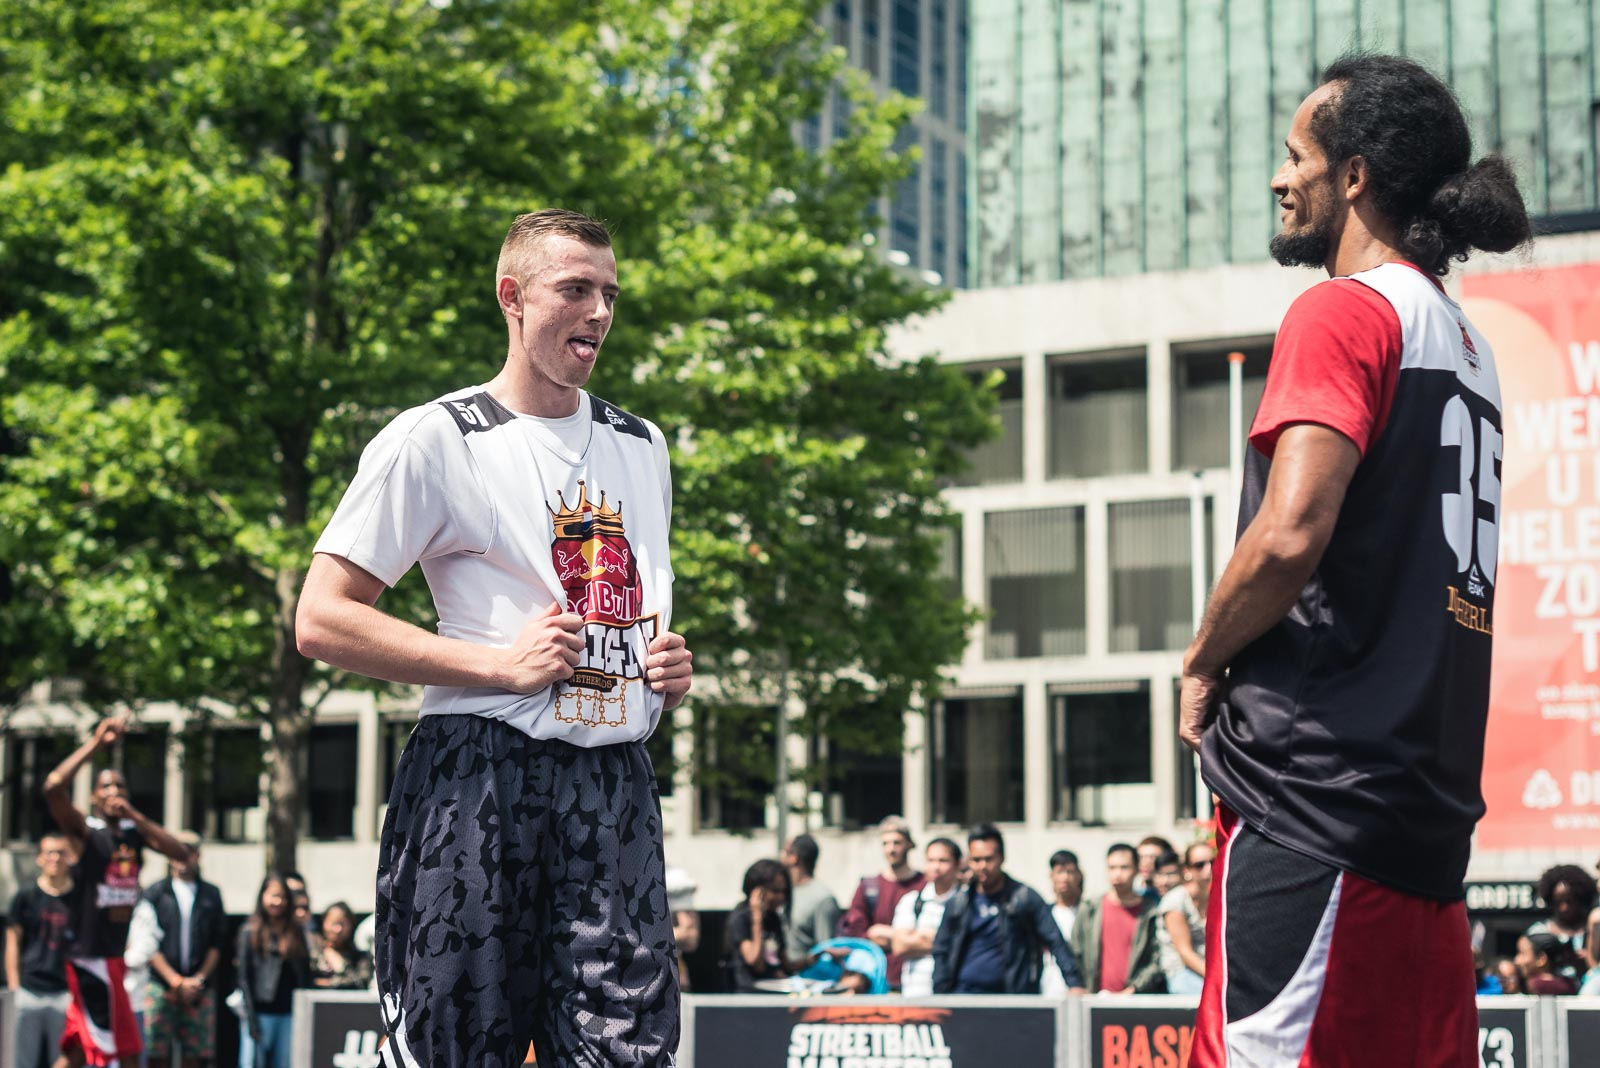 Basketball player challenging an opponent during Red Bull Reign in Holland